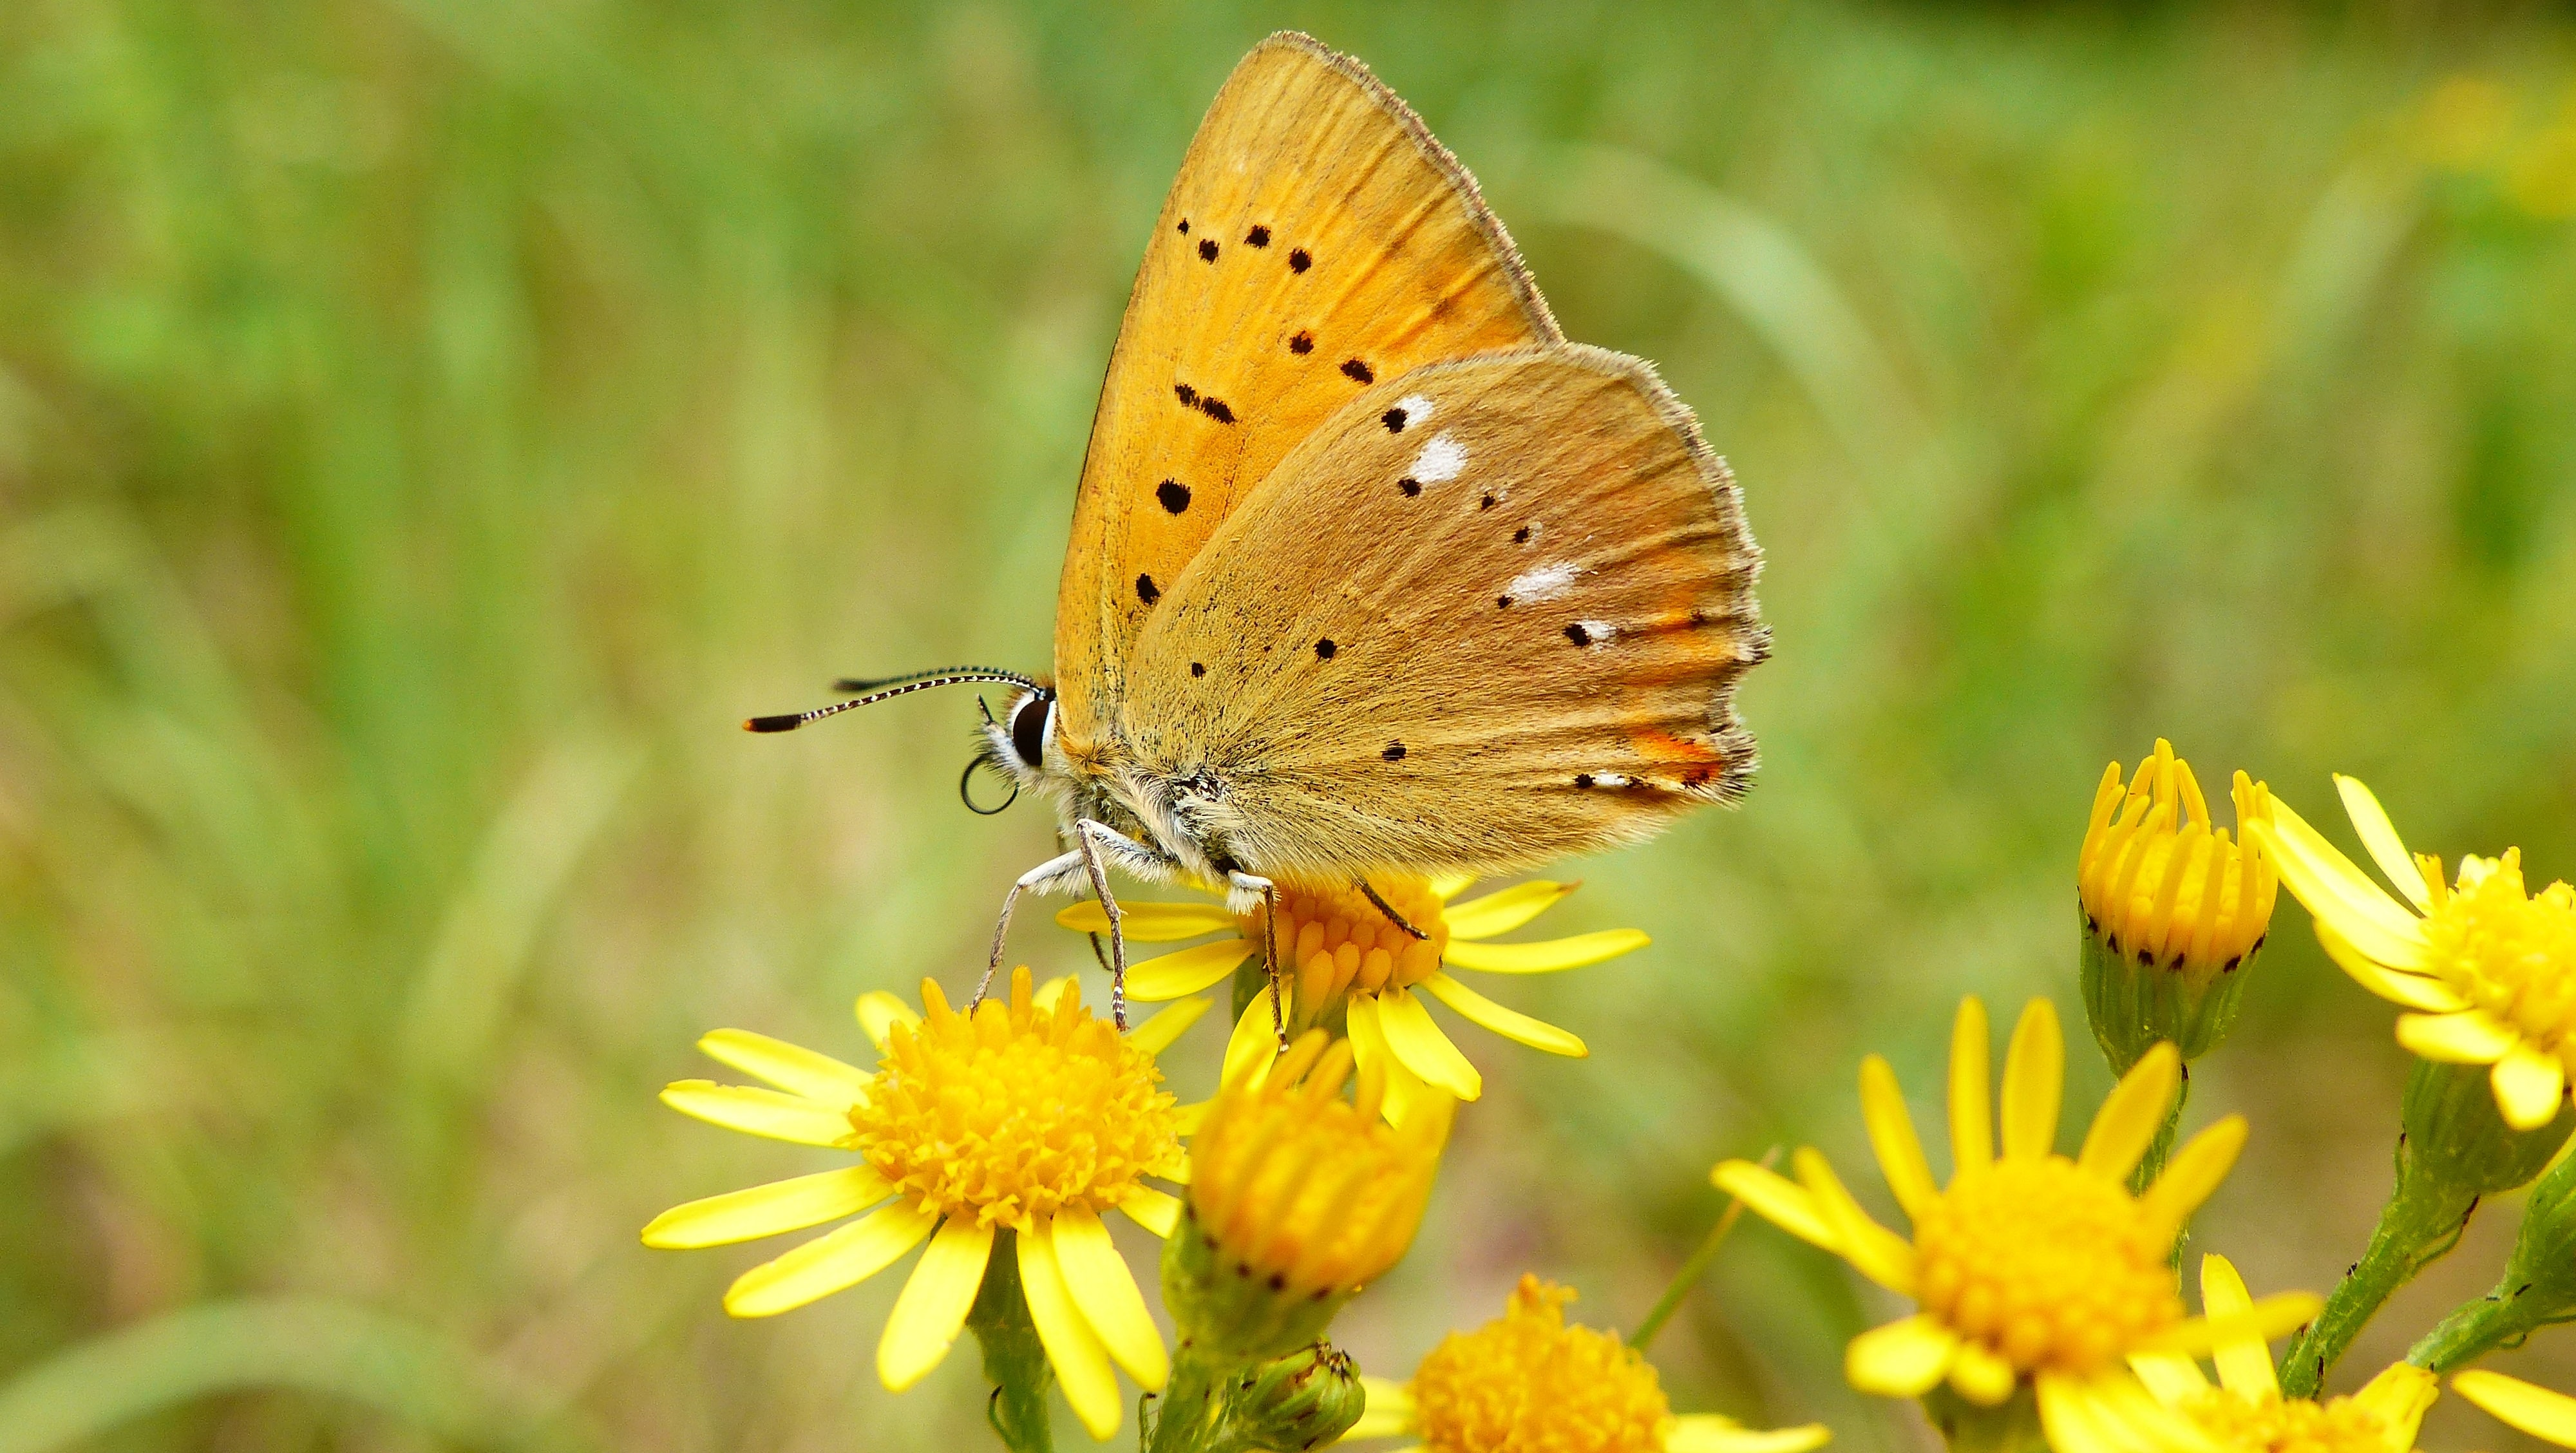 brown butterfly on yellow petaled flower